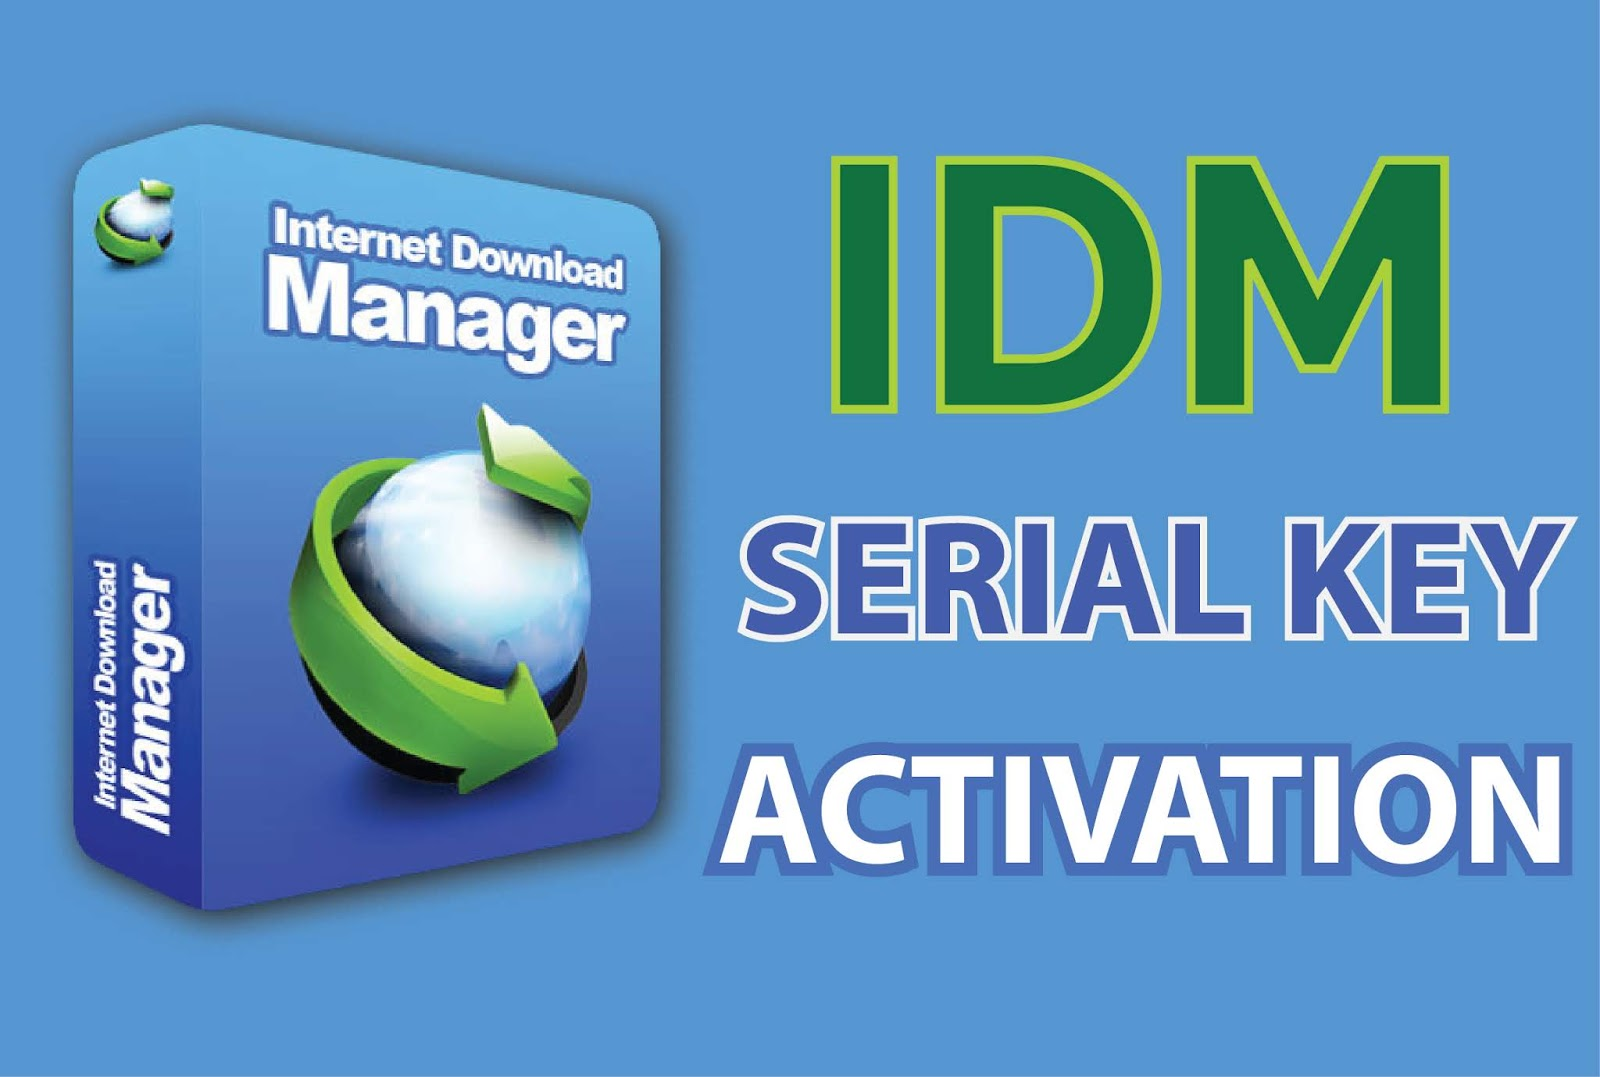 download full version internet download manager serial key free